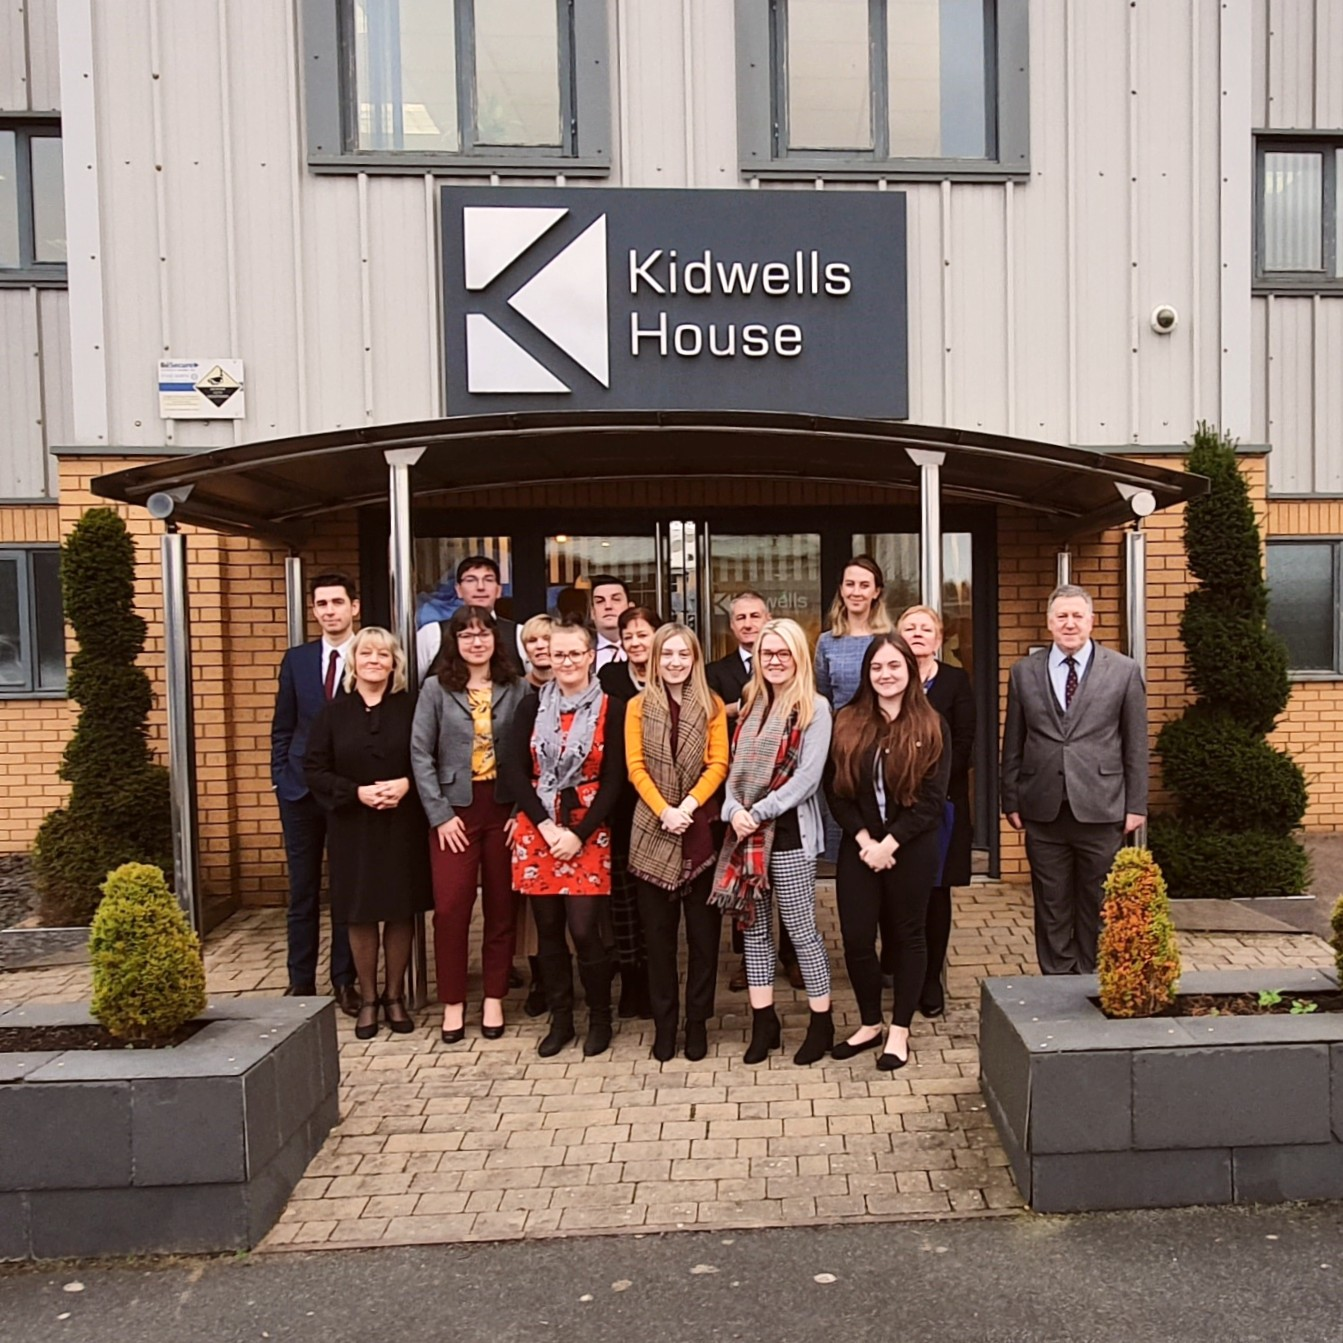 The Kidwells team brings in the New Year and new decade at the Kidwells office.